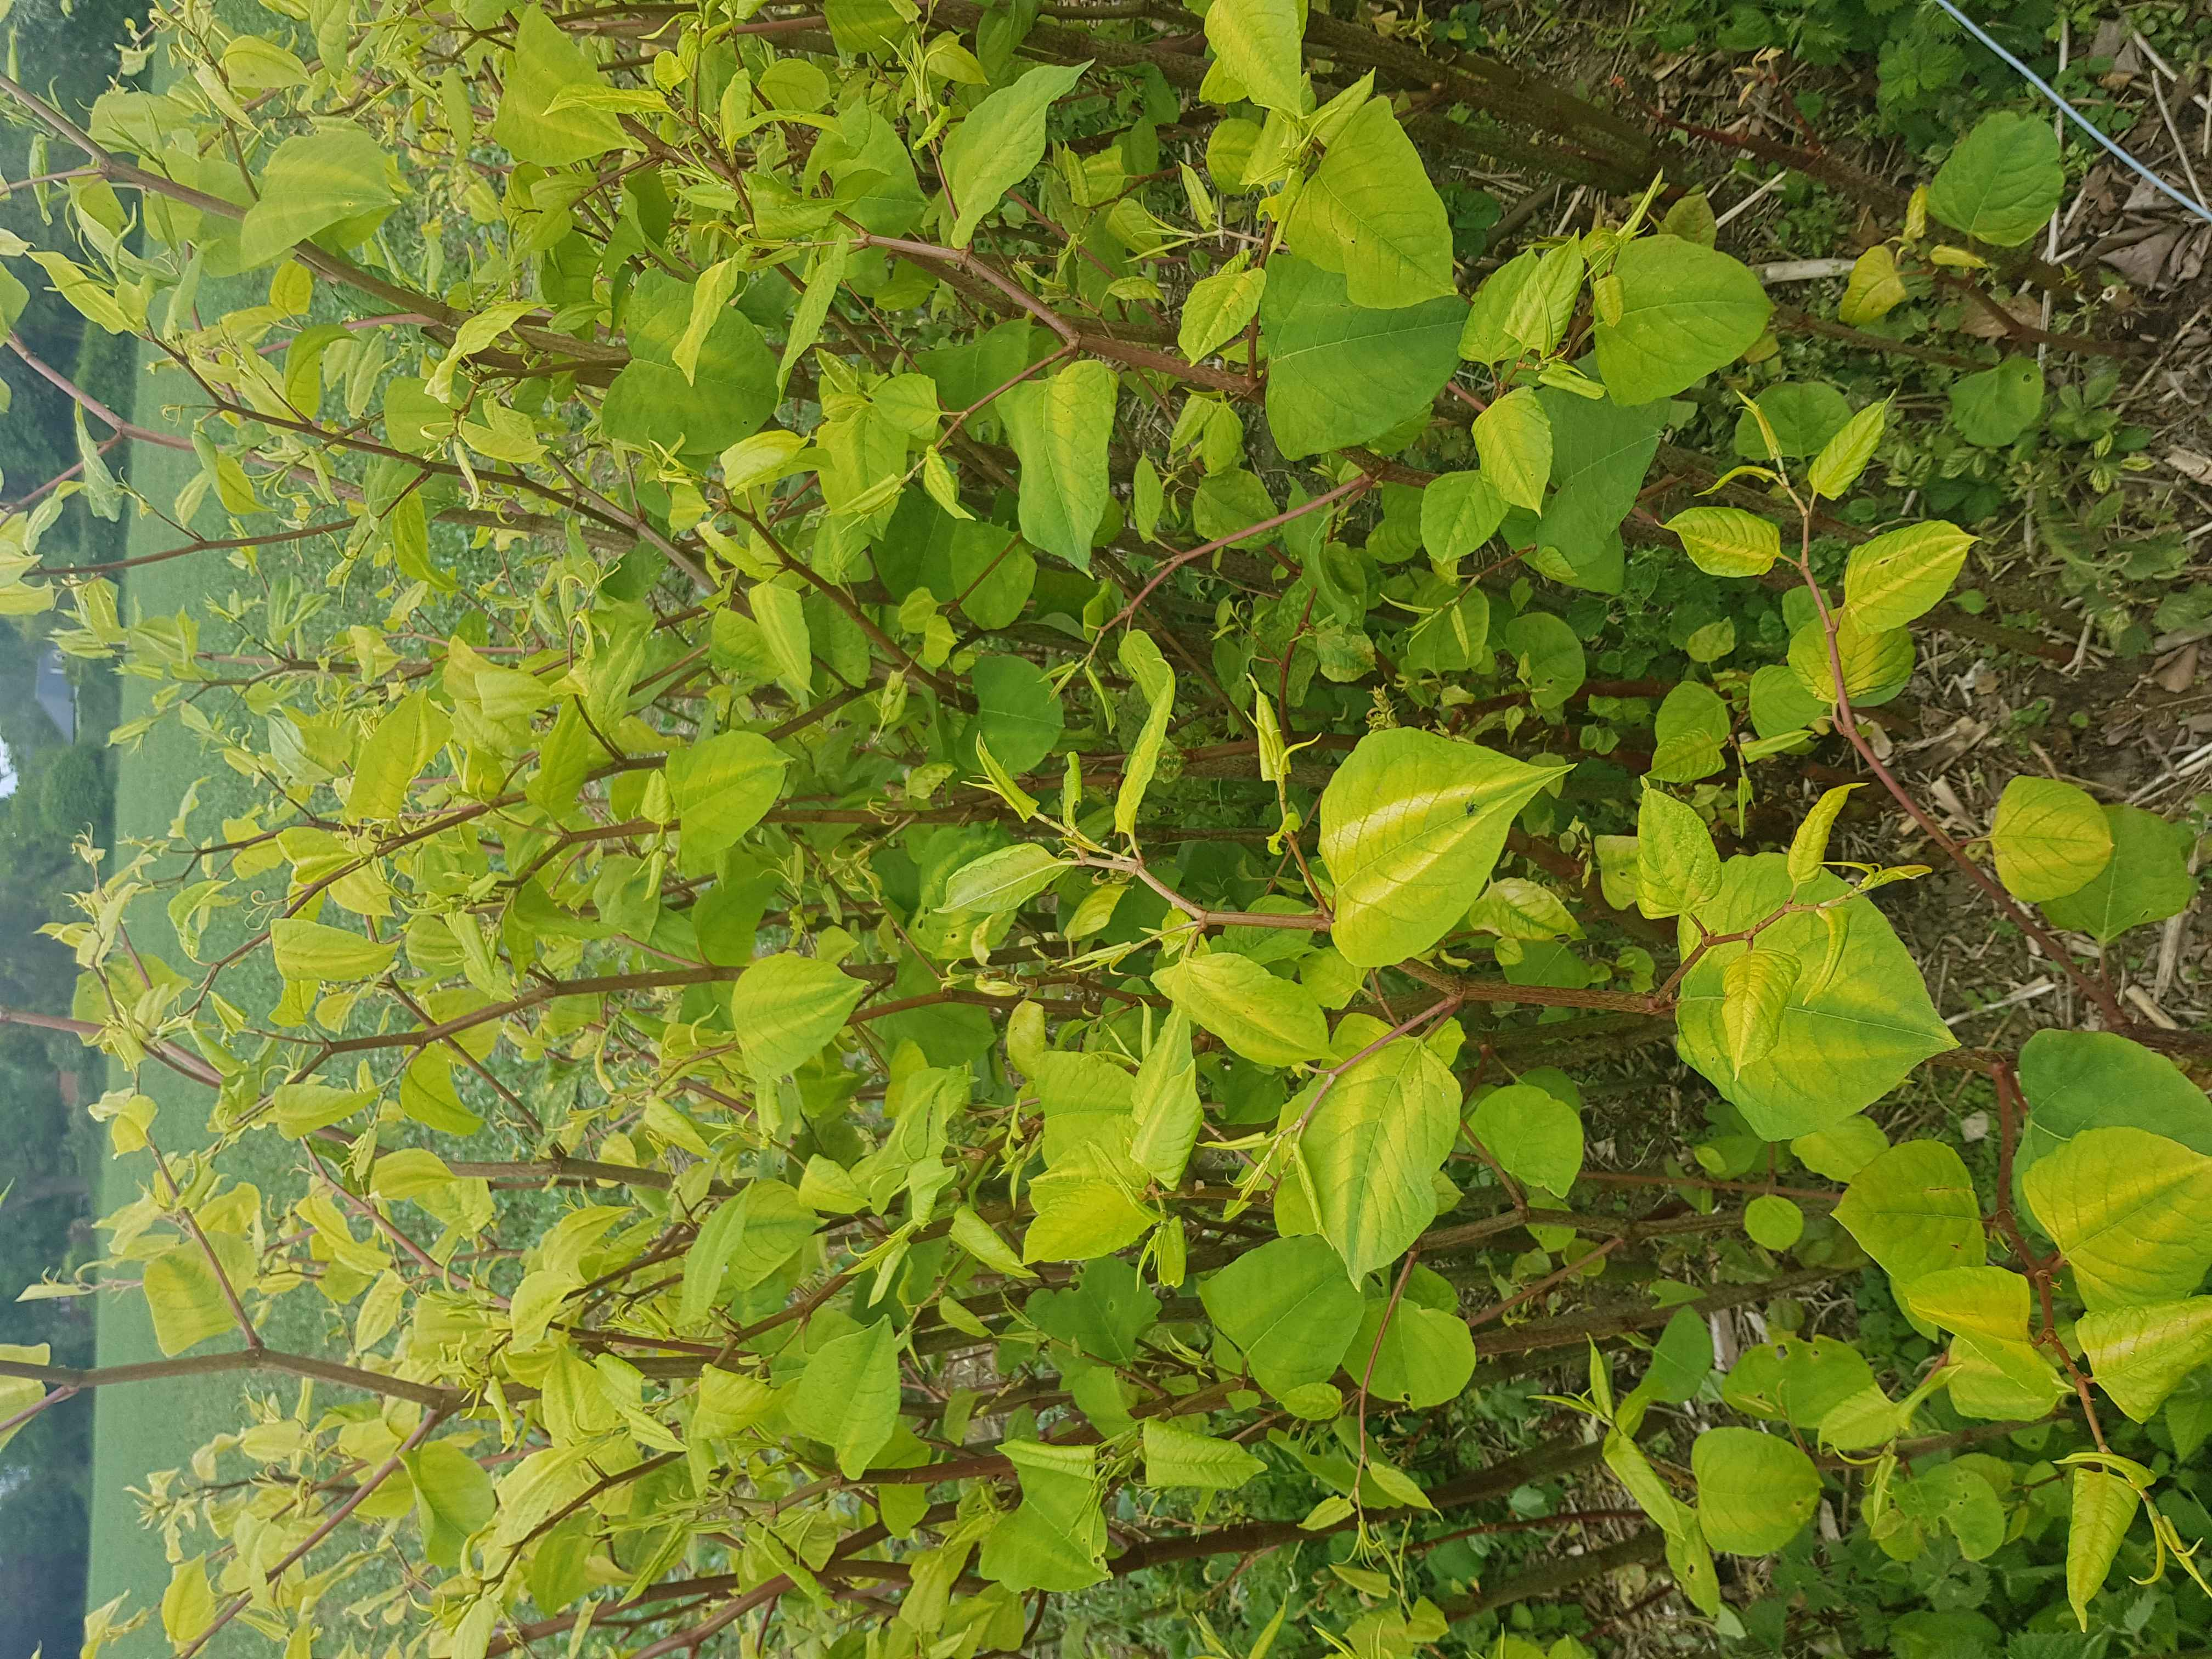 Japanese Knotweed in St Ives was preventing the owner from being able to sell their property.